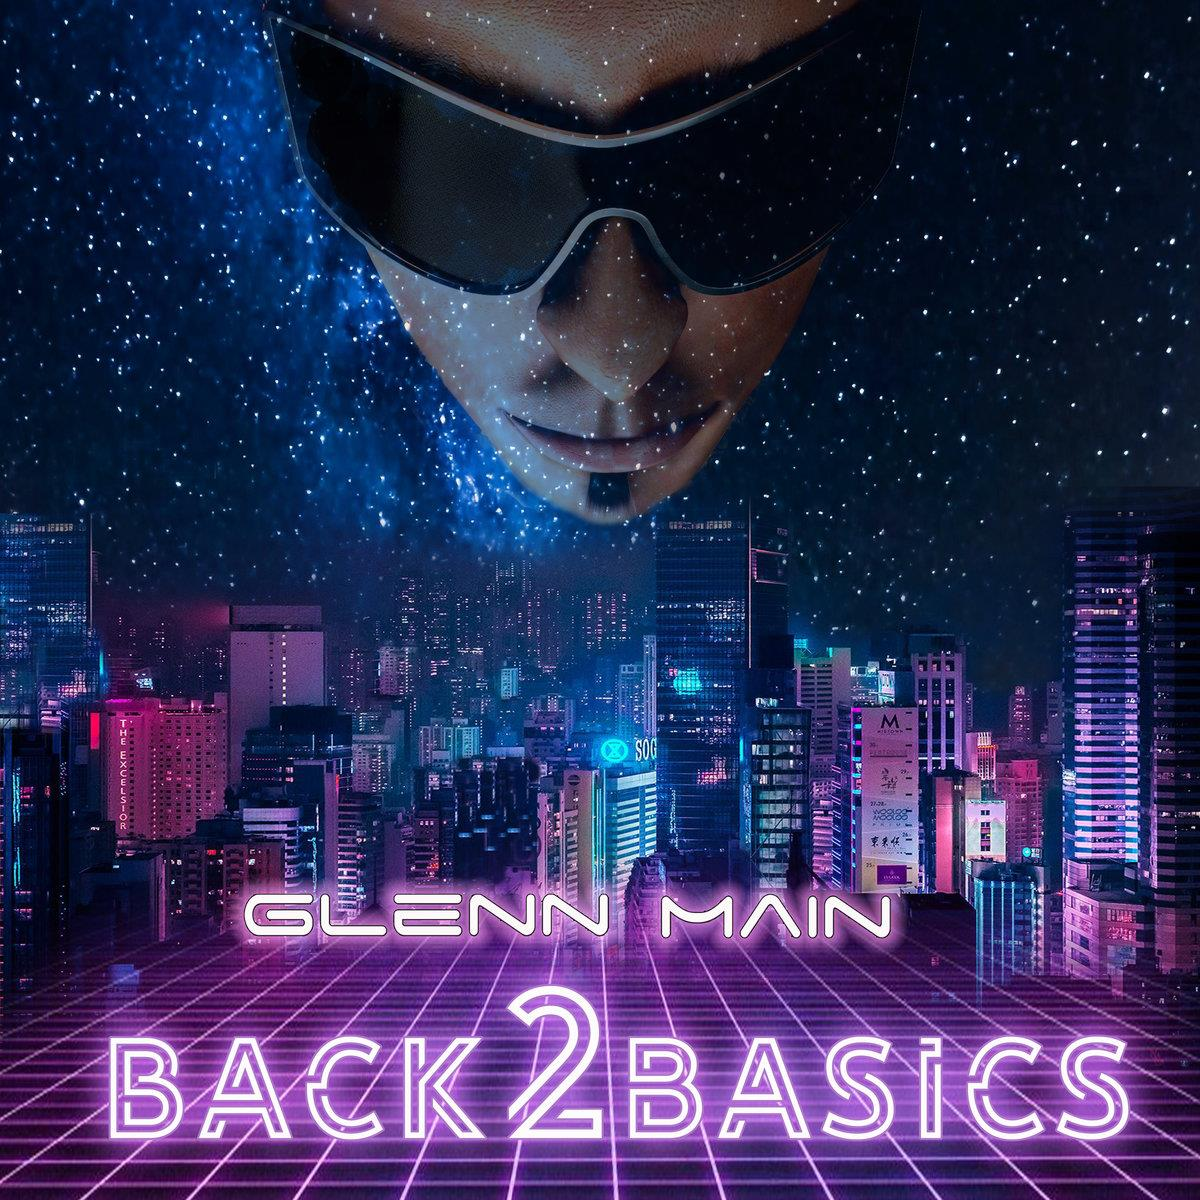 GHM2019-14 G.H. Main Records  Glenn Main Back 2 Basics (LP)